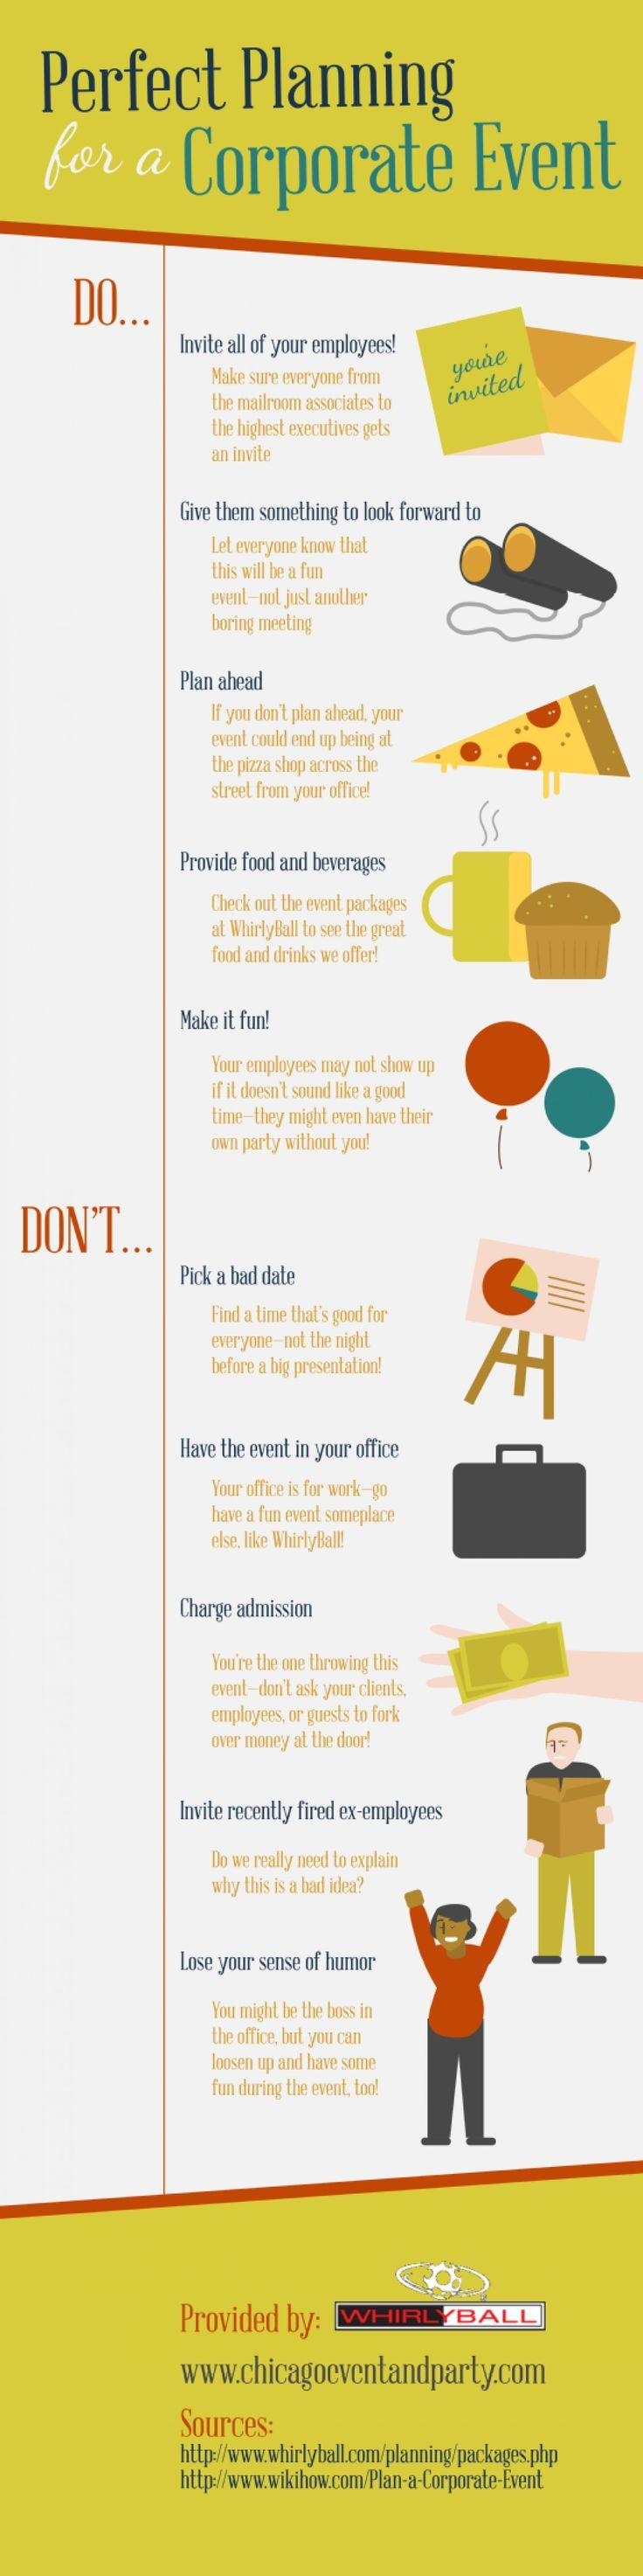 96 best event planning images on pinterest event planning business perfect planning for a corporate event infographic more fandeluxe Image collections